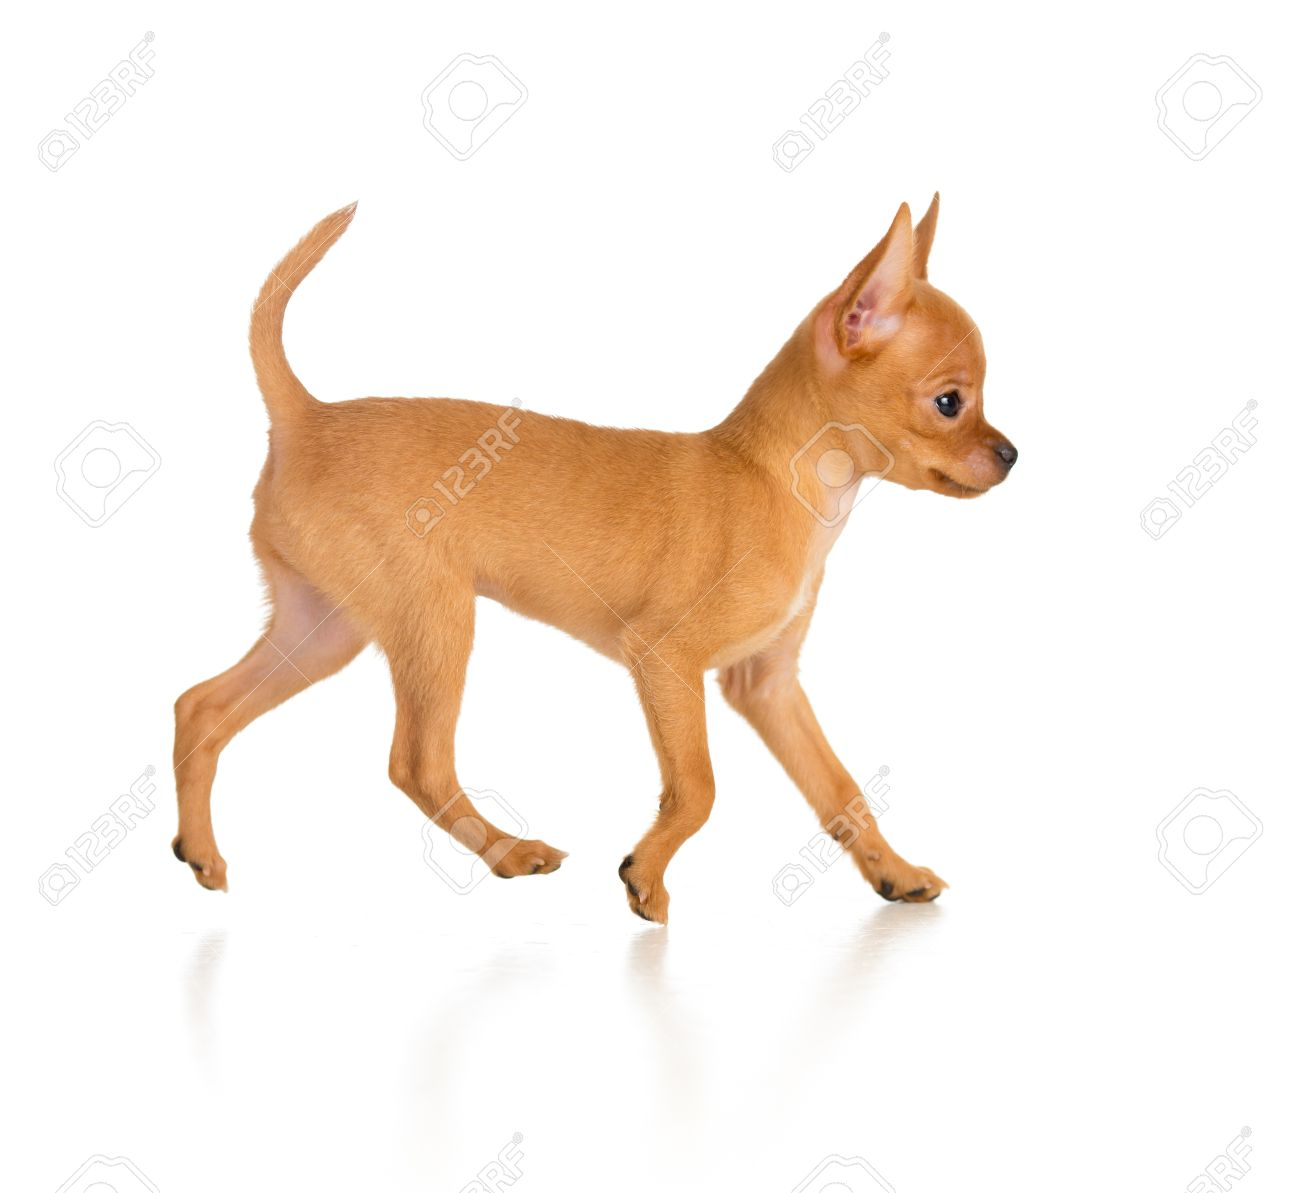 dog running side view